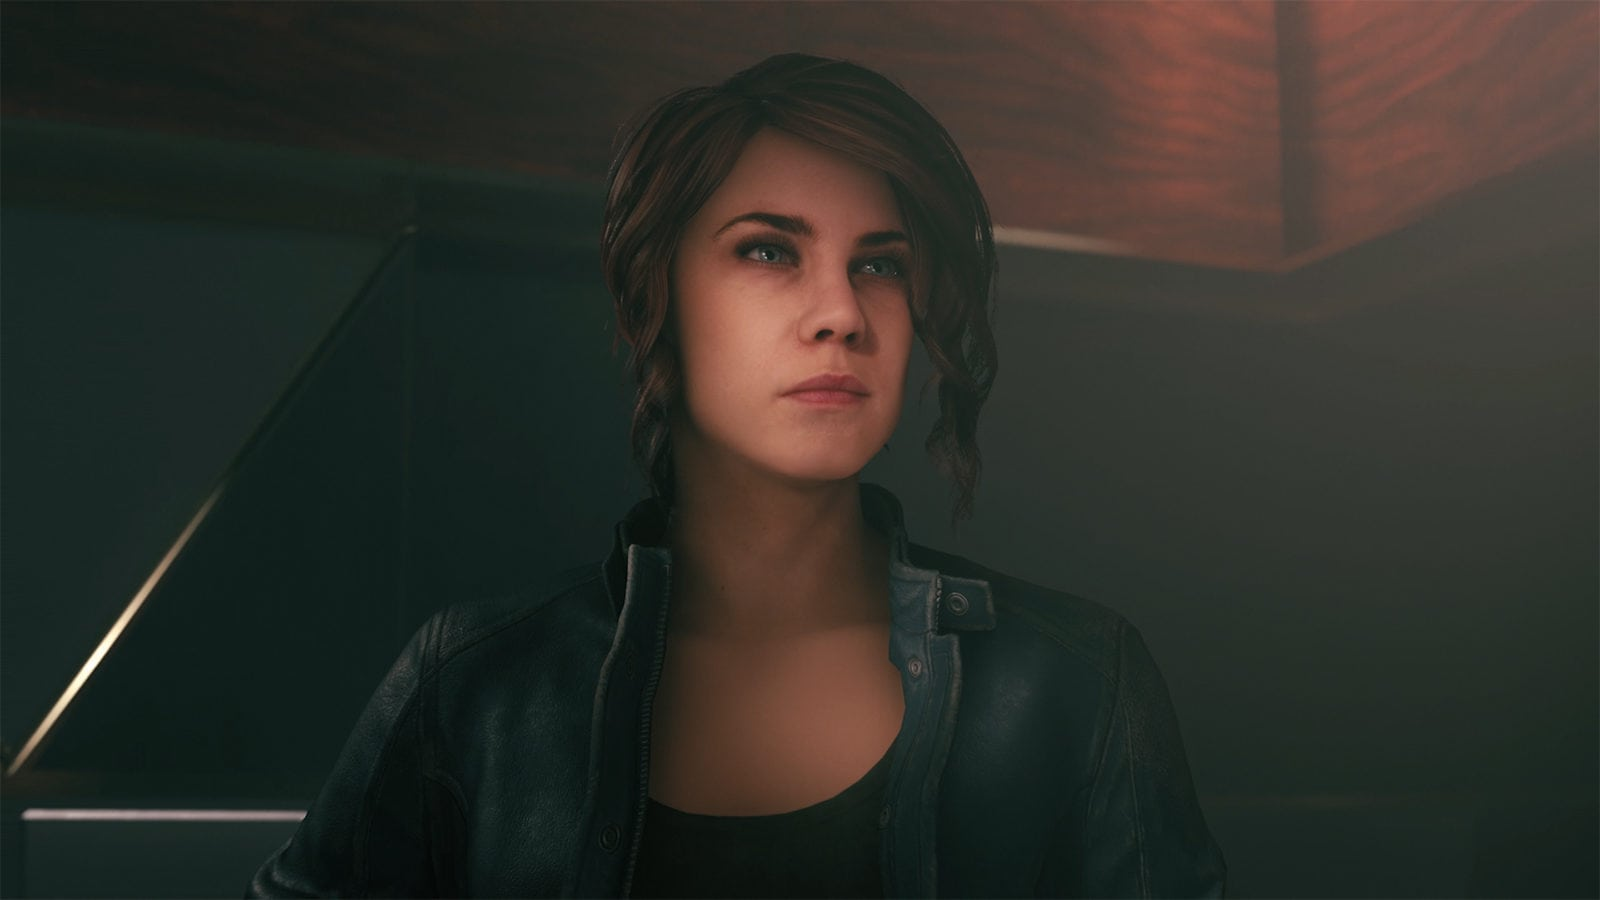 505 Games Partners With Female Creators Only To Introduce Control's Female Protagonist, Jesse Faden